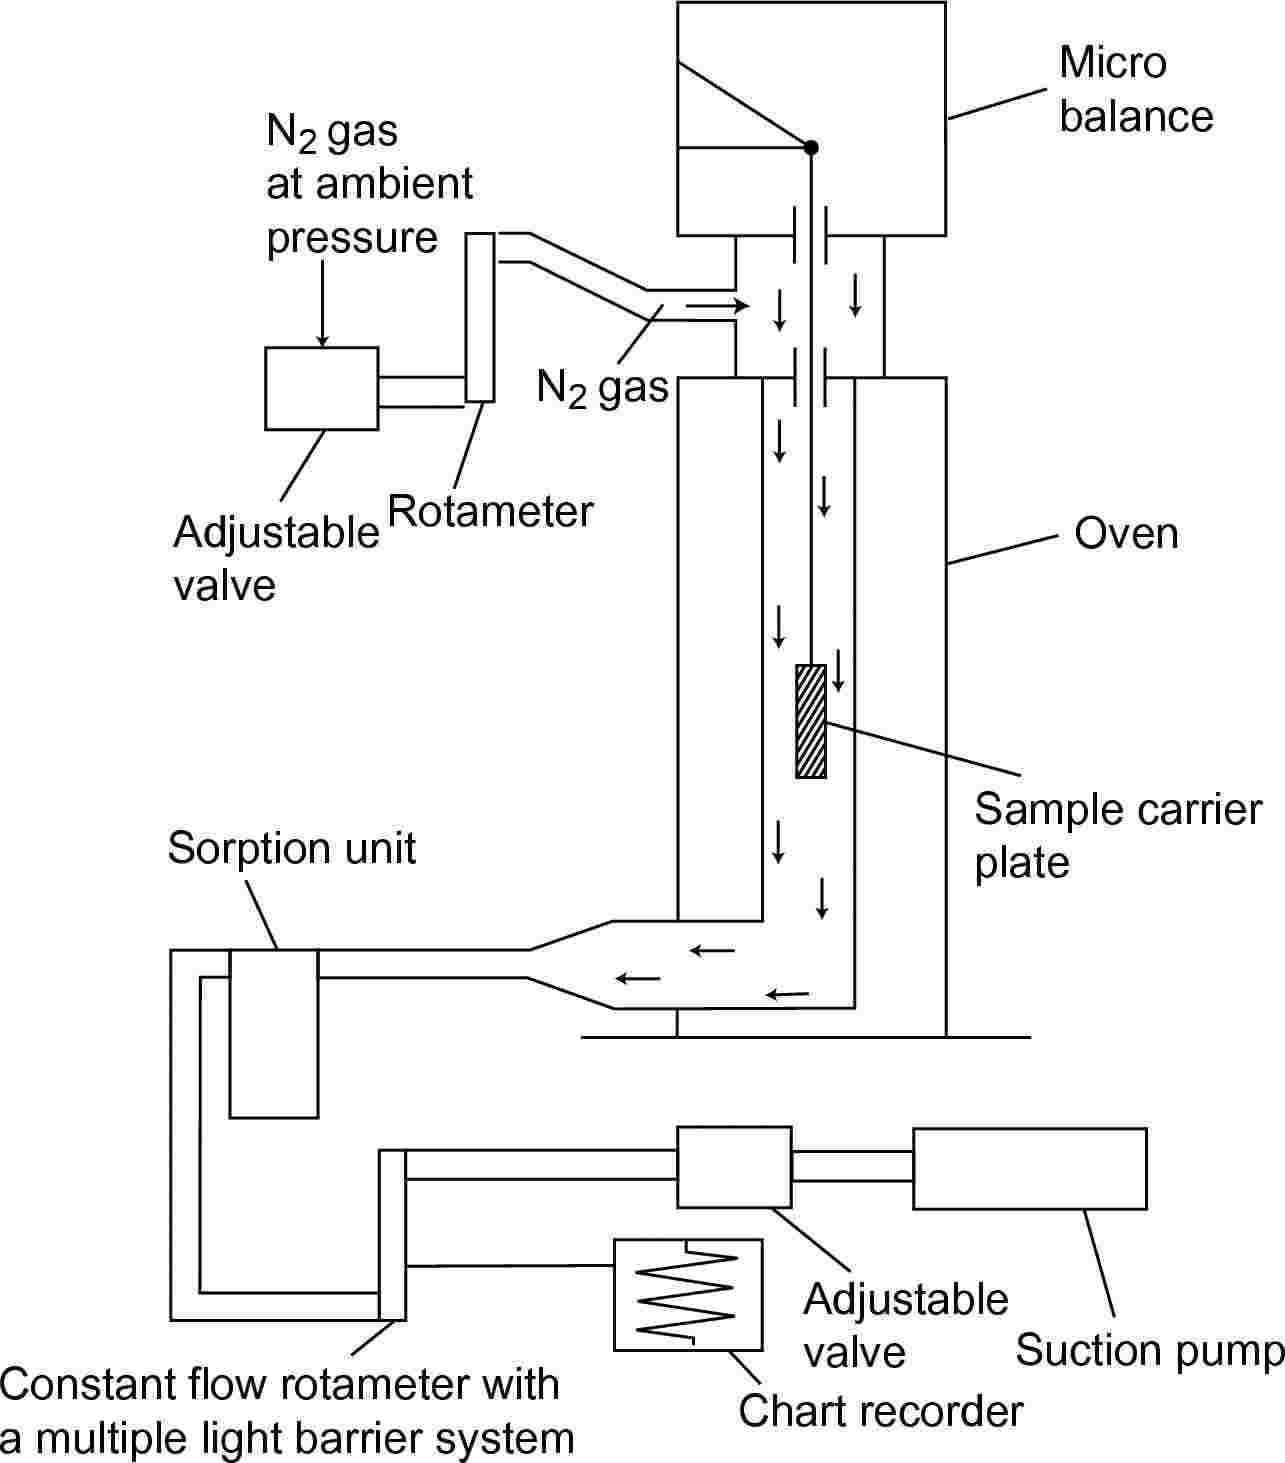 RotameterSuction pumpConstant flow rotameter with a multiple light barrier systemChart recorderSample carrier plateSorption unitAdjustable valveAdjustable valveMicro balanceN2 gasOvenN2 gas at ambient pressure